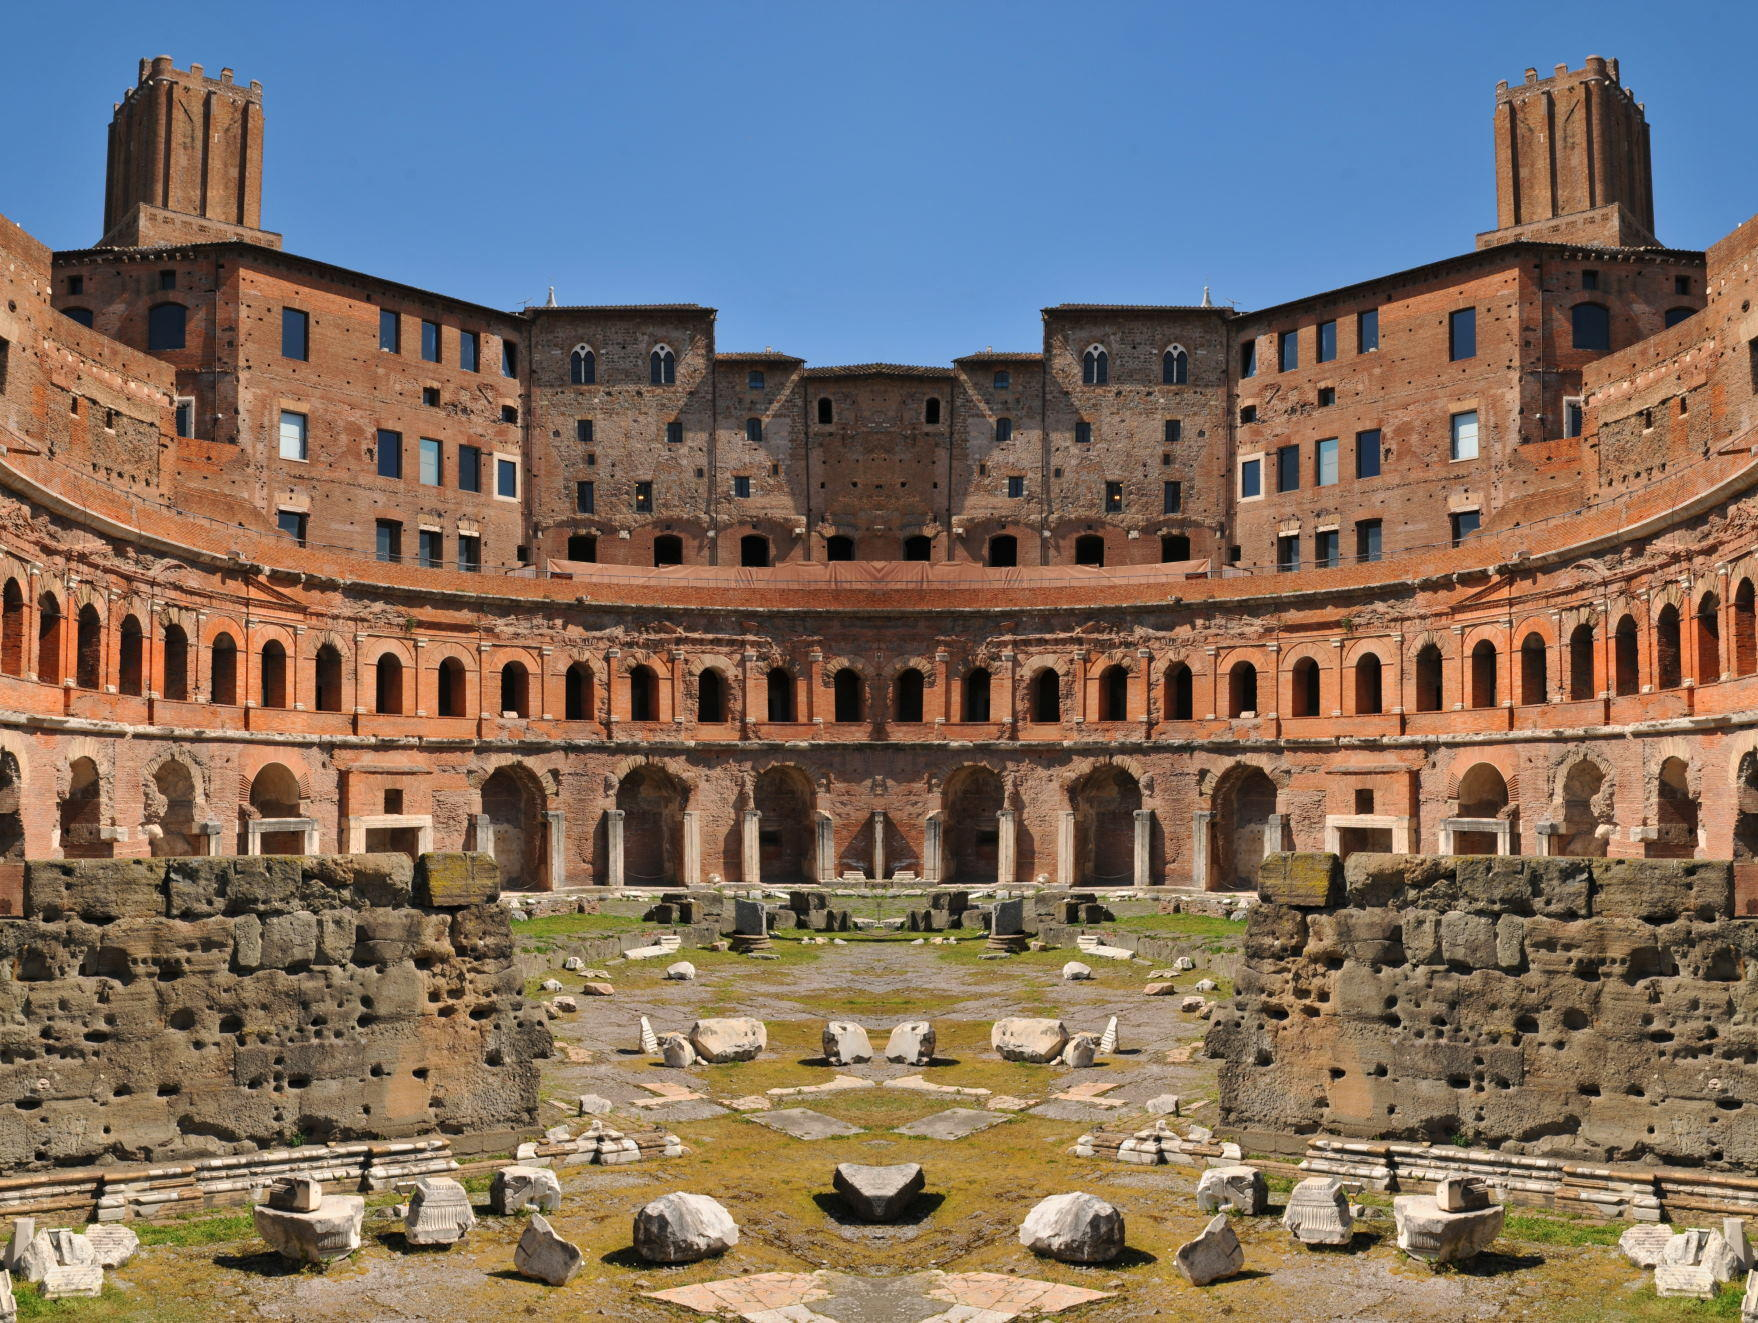 Panorama of the Trajan's Market in Rome, Italy